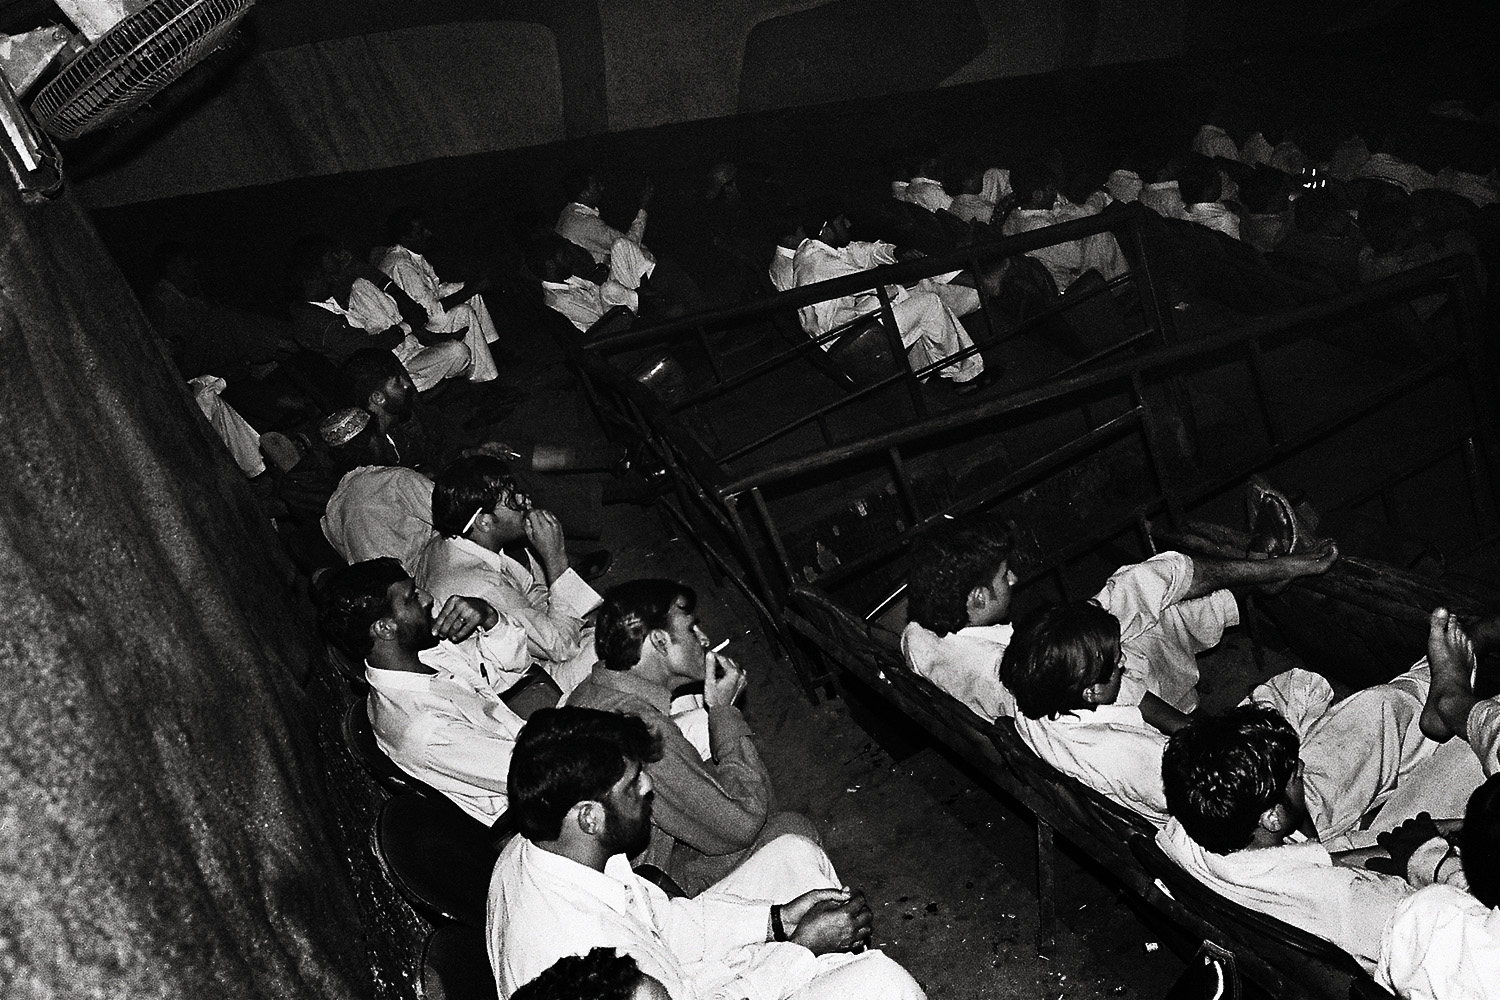 The cinema gets increasingly packed after Friday prayers when the city lets out from work and the weekend begins. A man lights up a joint in the back row as the film starts.